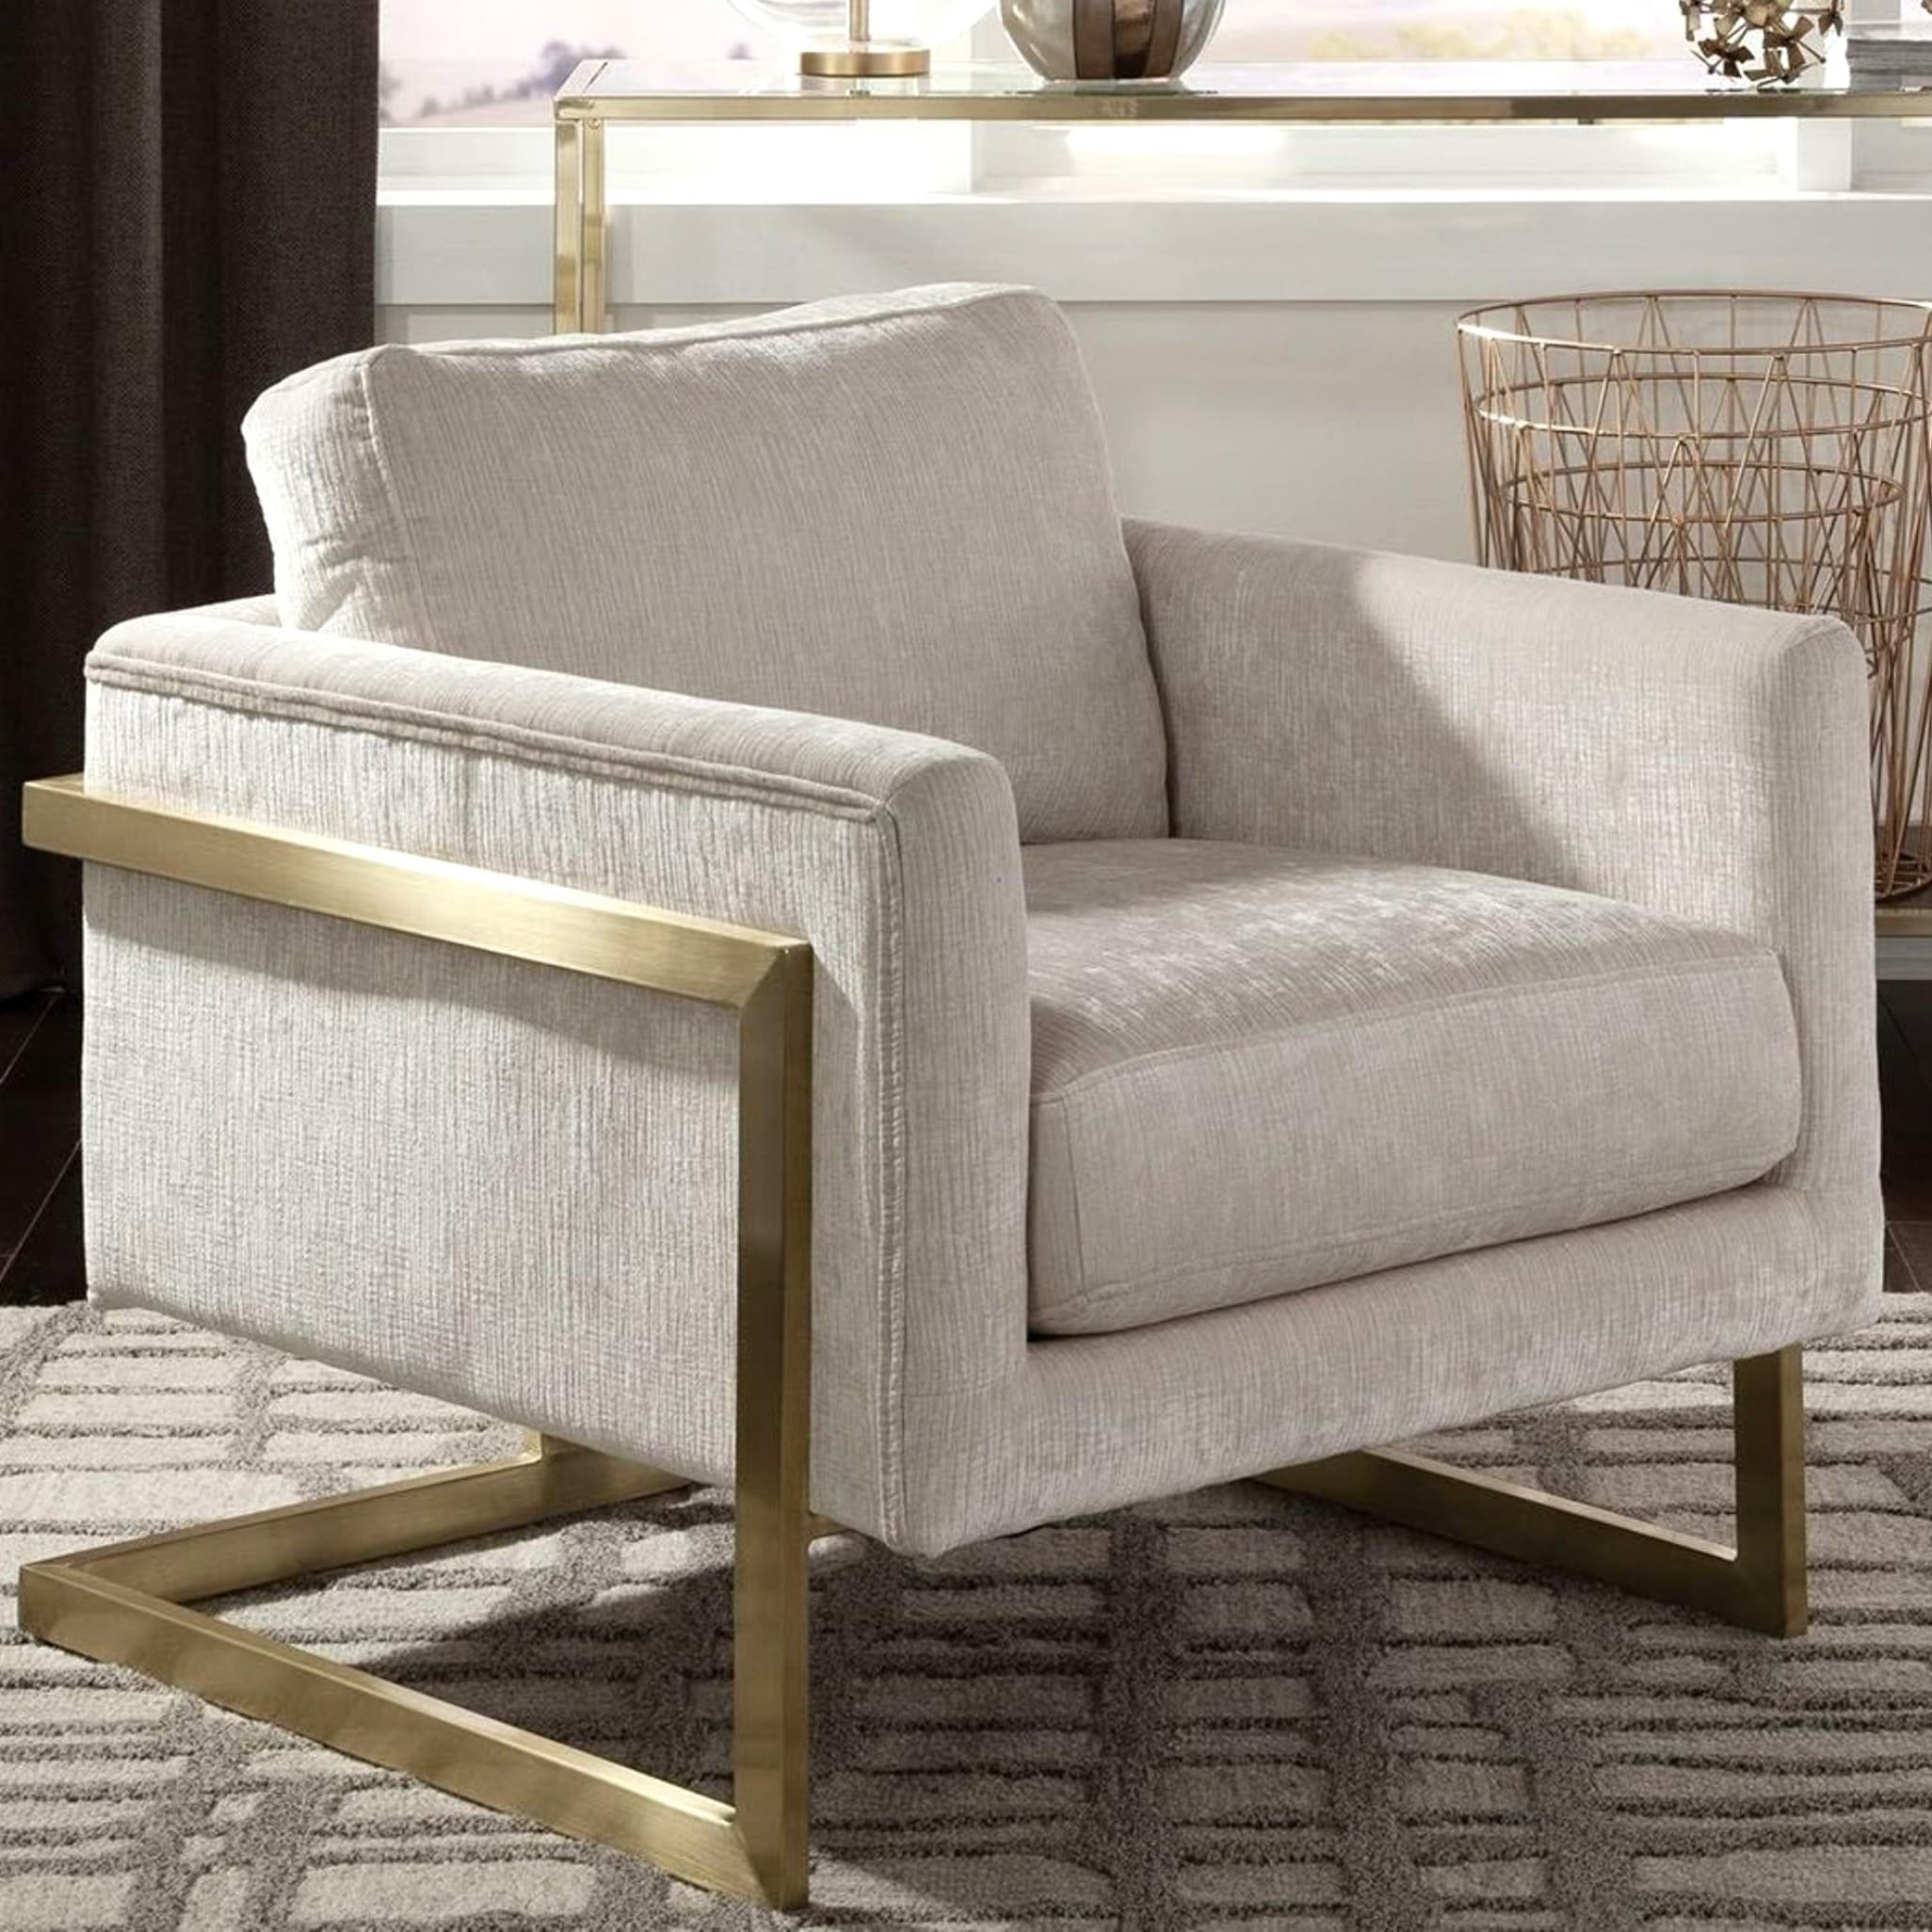 inspiration chairs excellent room with accent decor living australia small for home chair about remodel